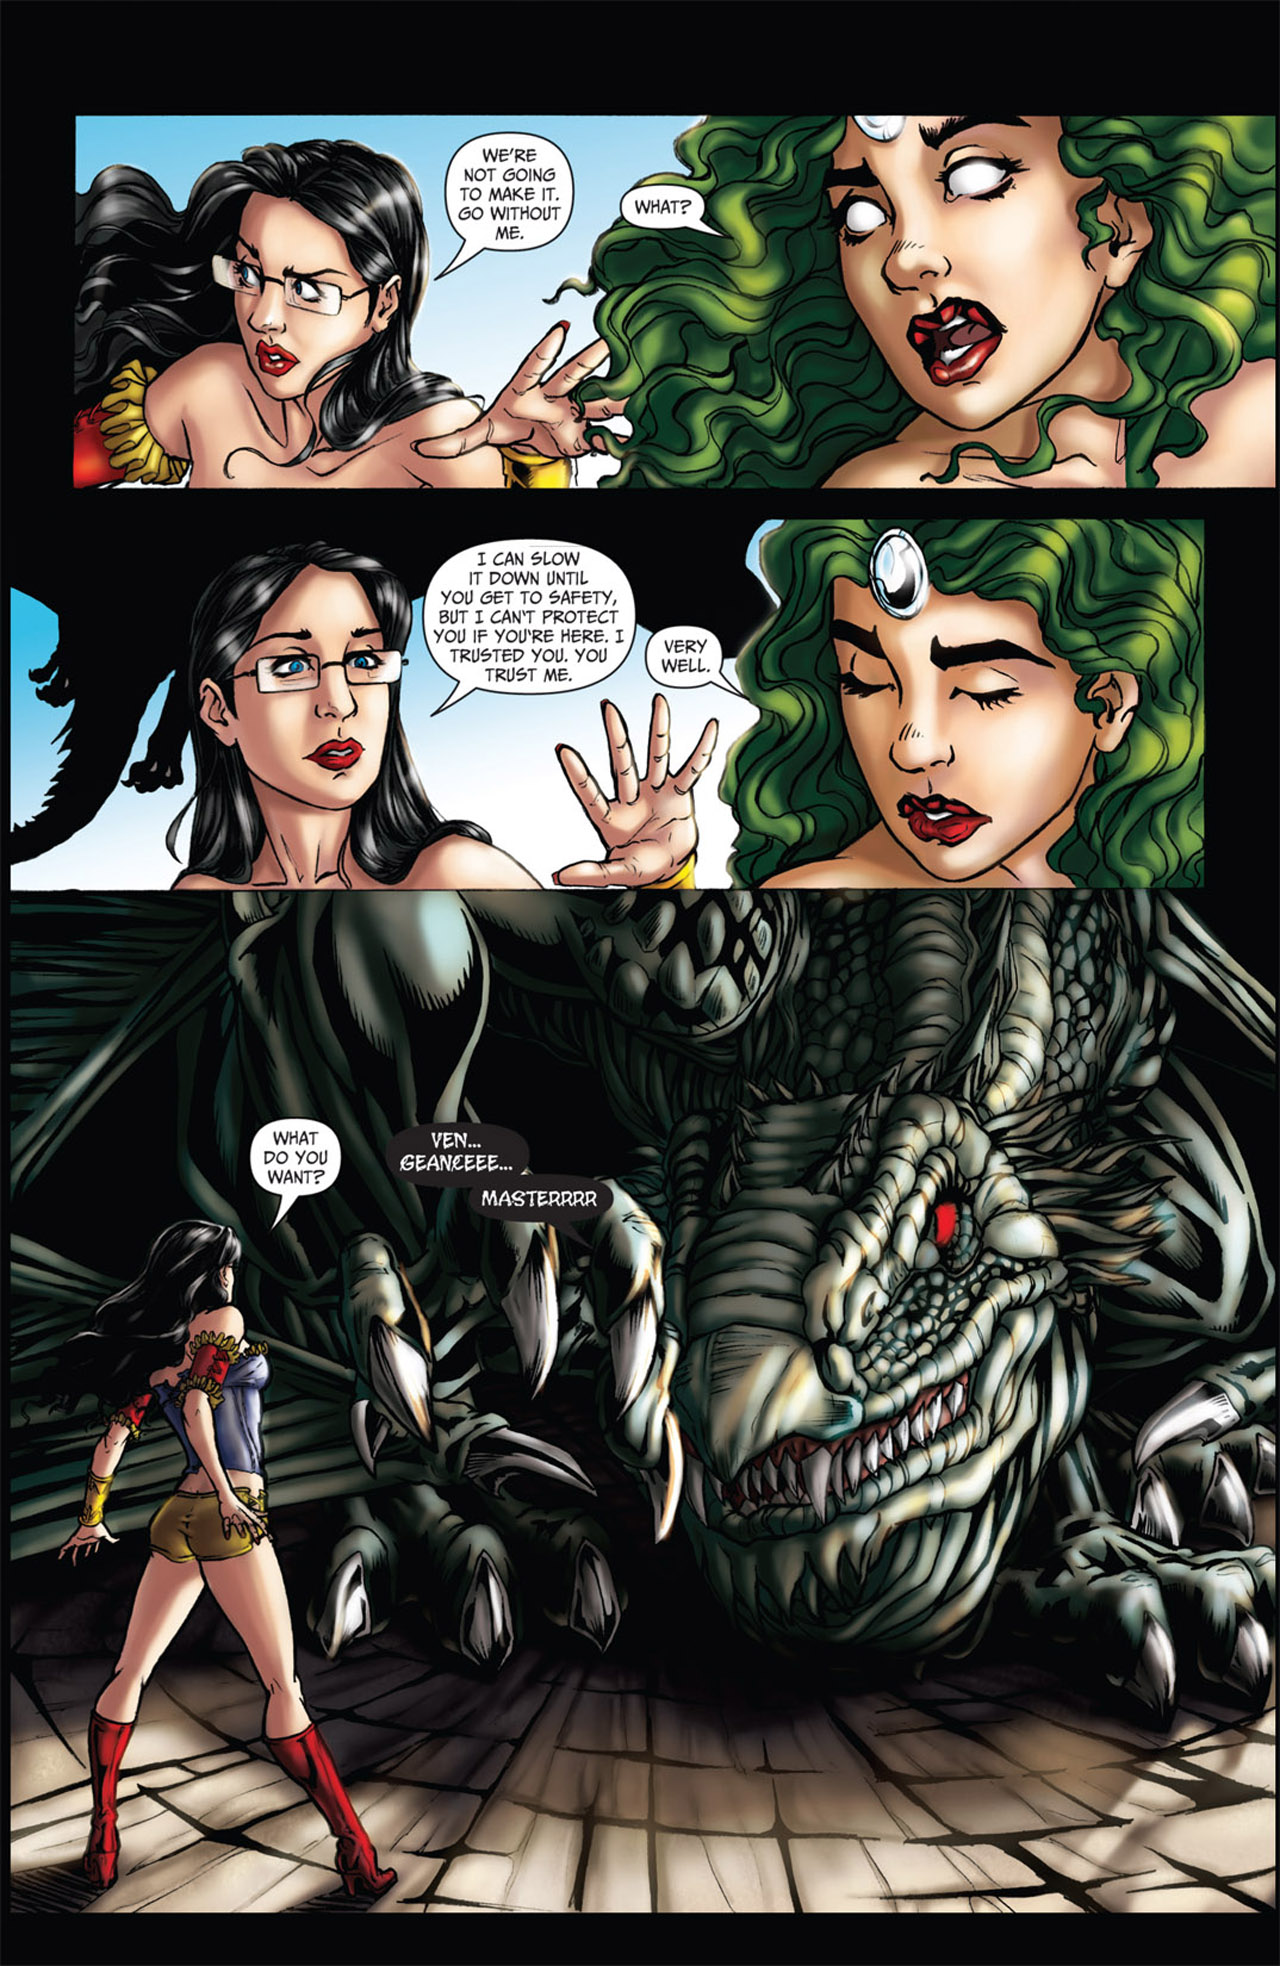 Grimm Fairy Tales (2005) Issue #61 #64 - English 12